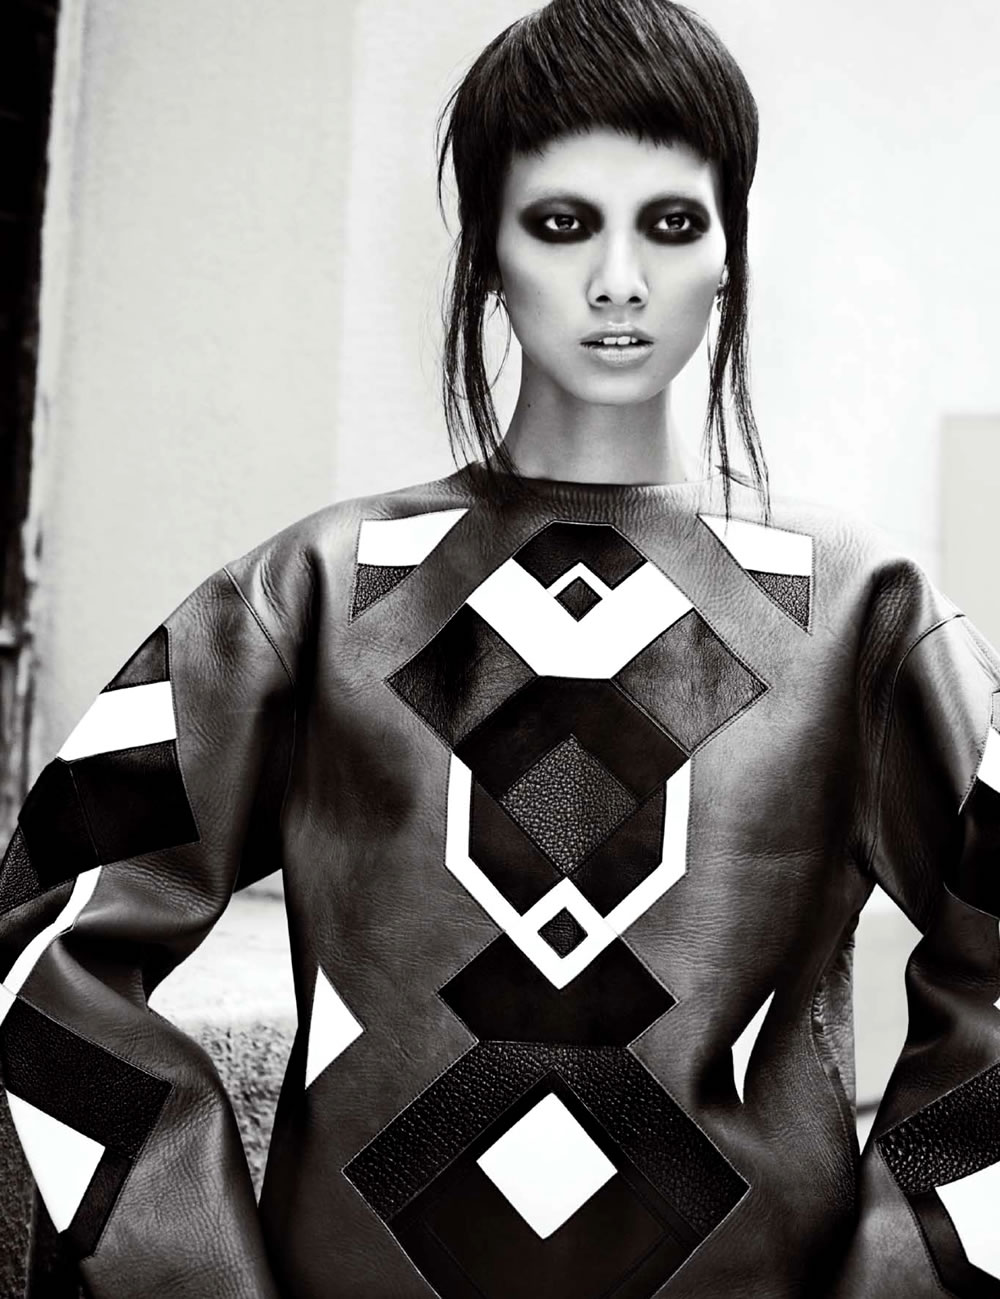 beijing-eye-photographer-china-fashion-trunk-xu-grace-gao-numero-november025_